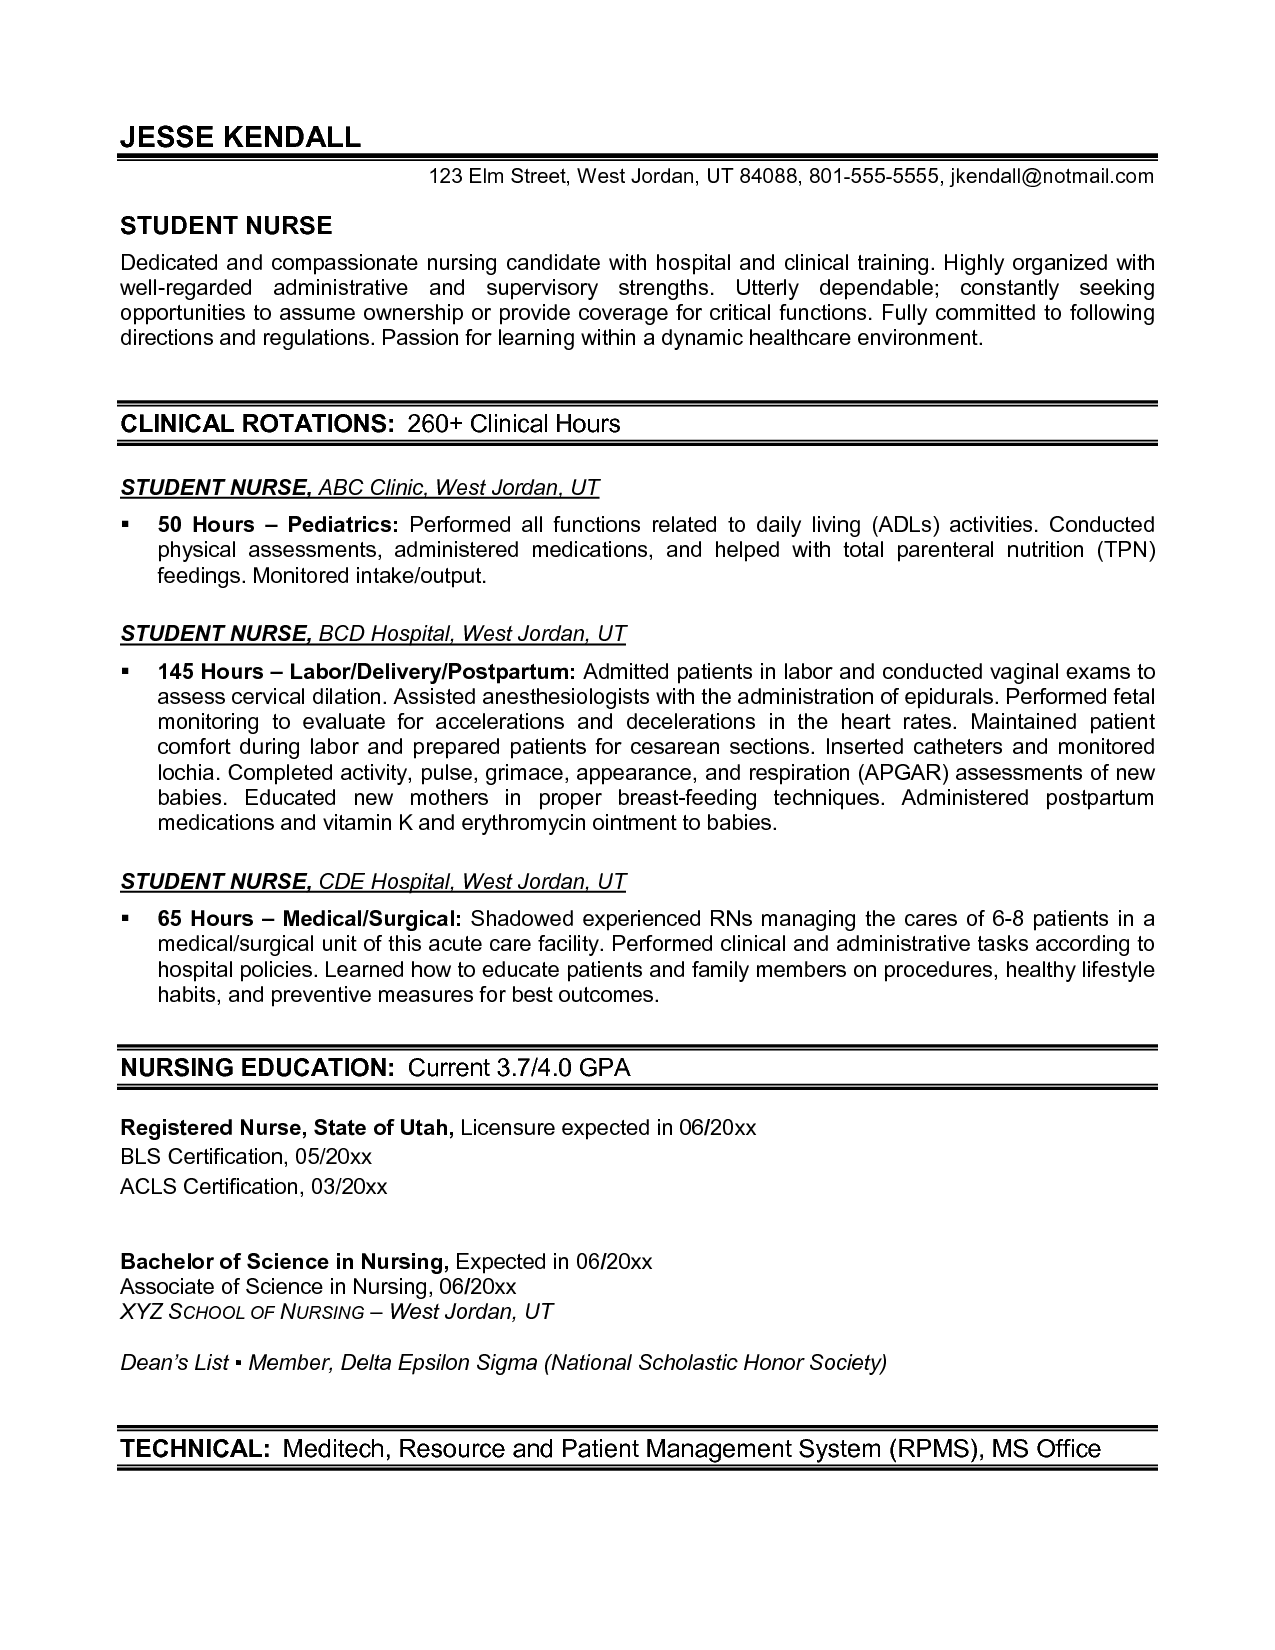 nursing resume template. Resume Example. Resume CV Cover Letter